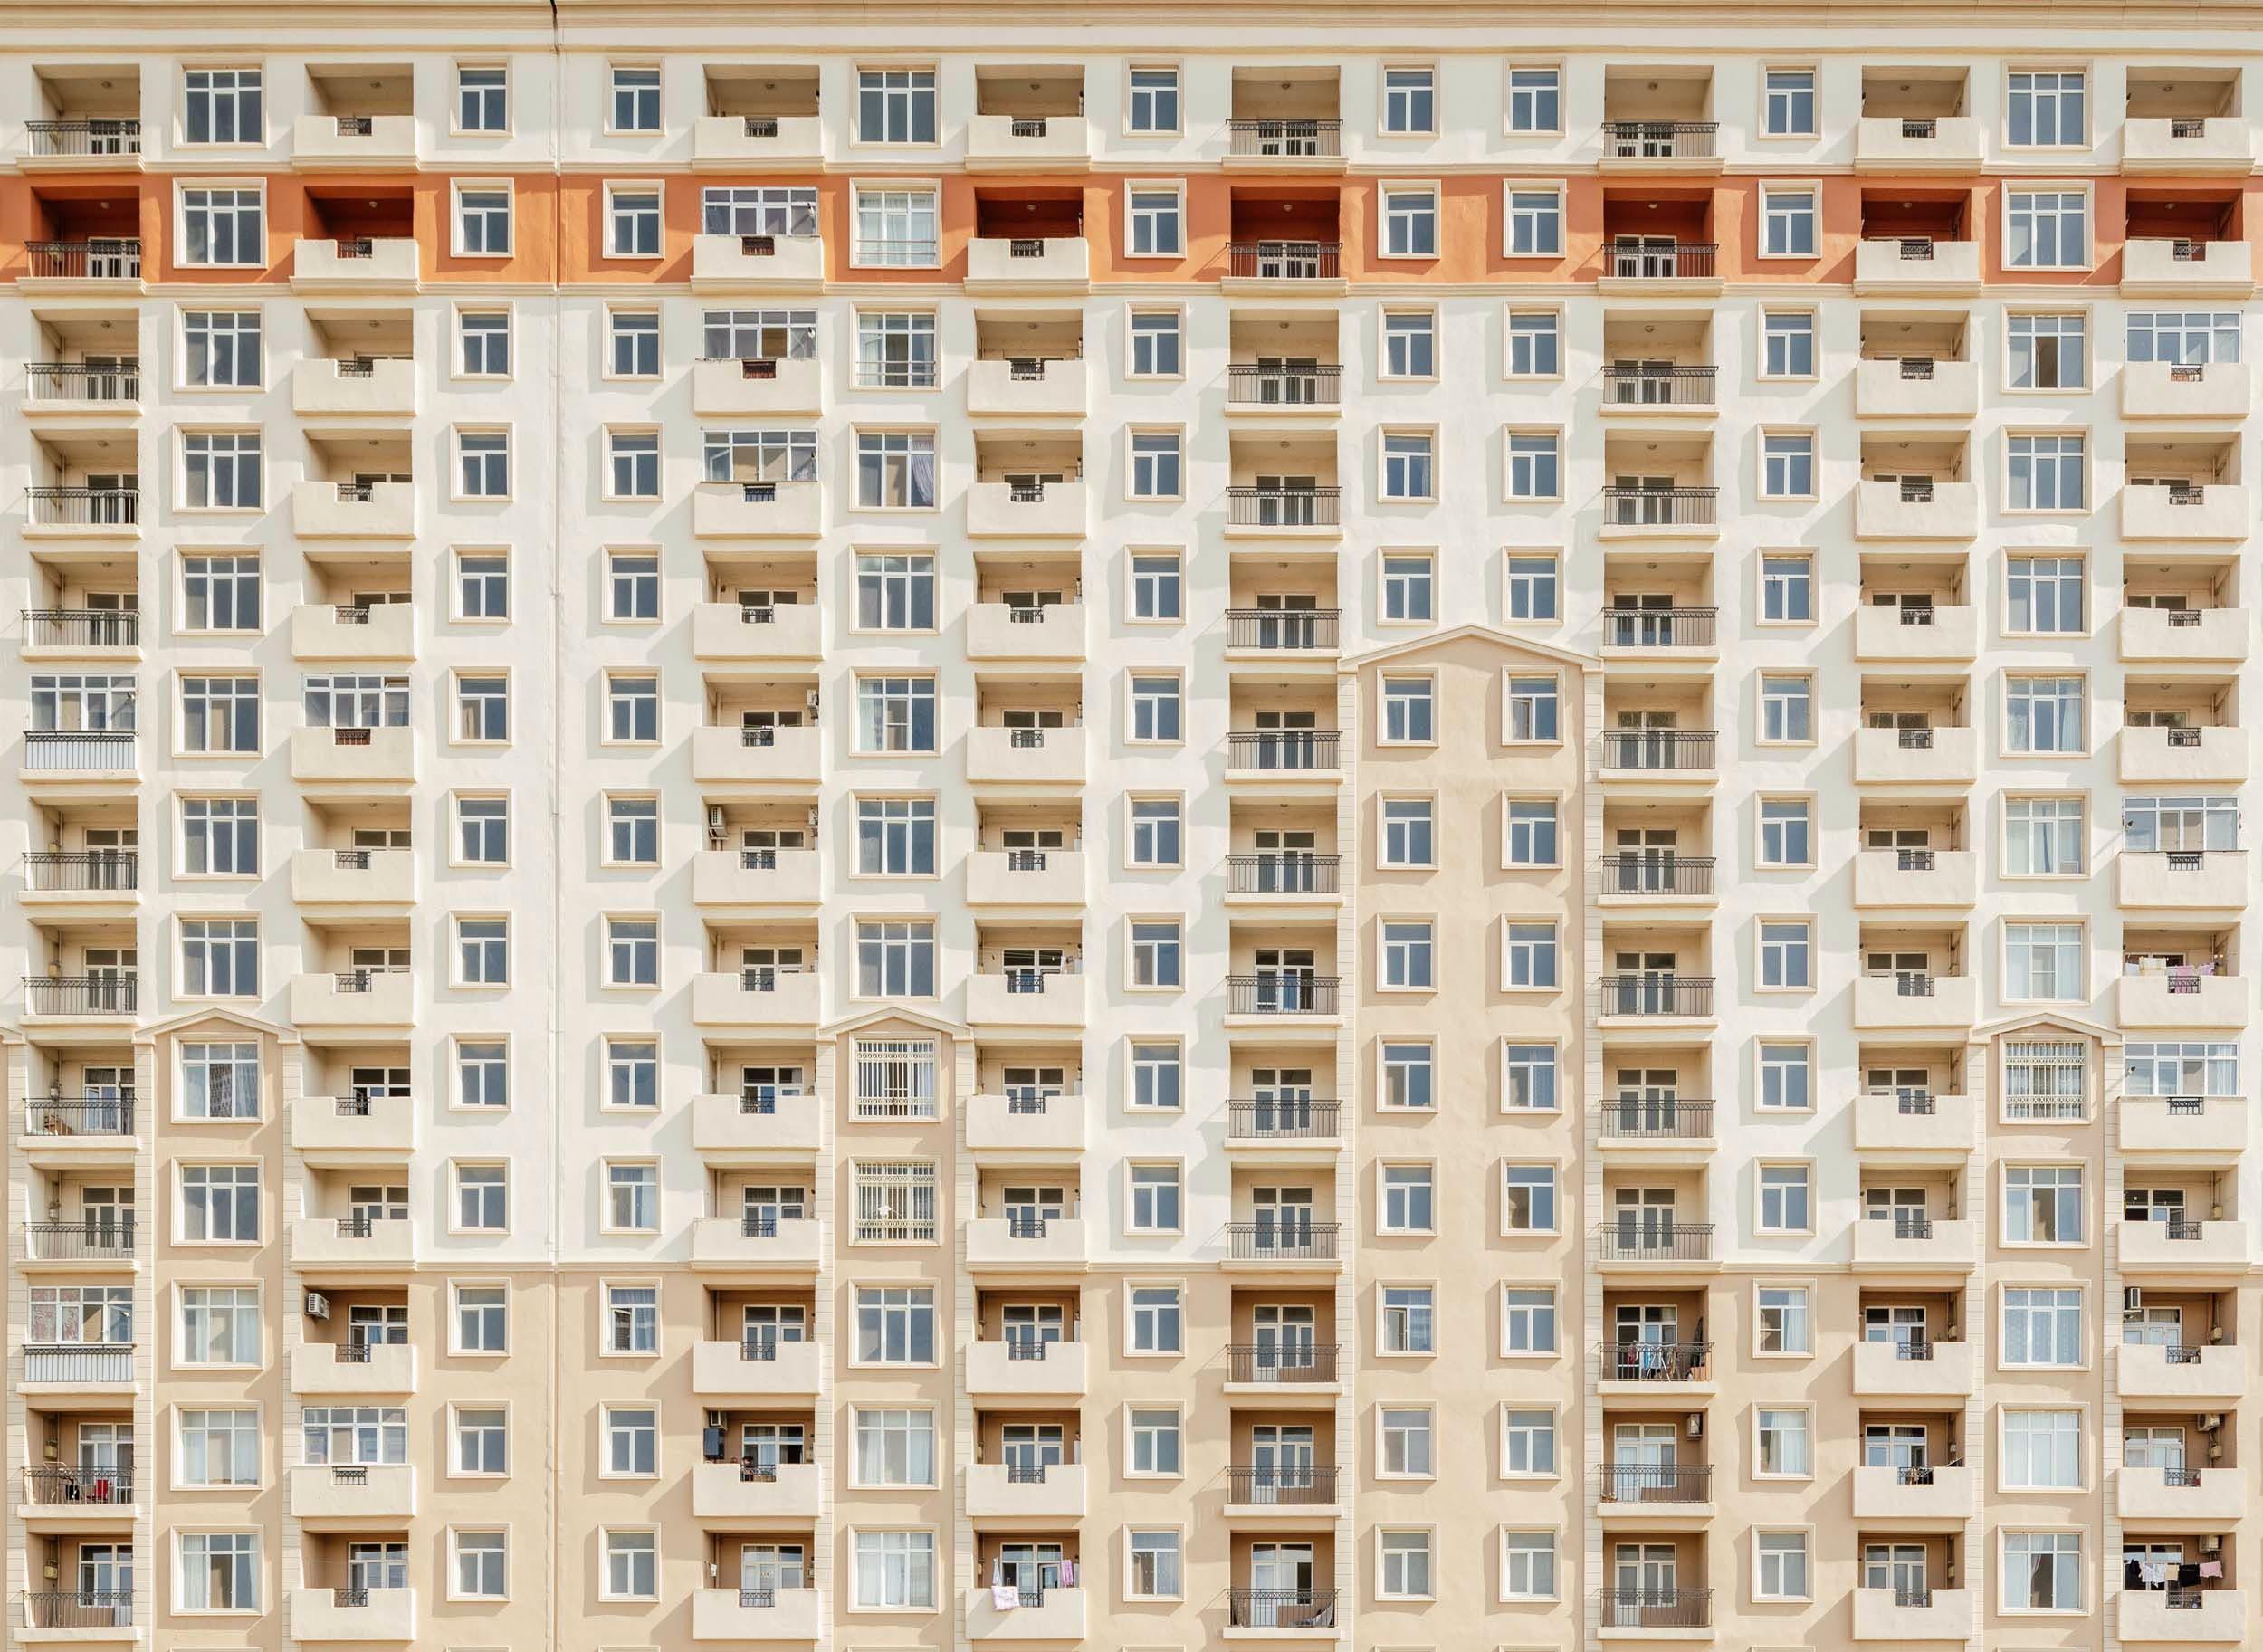 azerbaijan-housing-estate-block-apartments-architecture-geometry